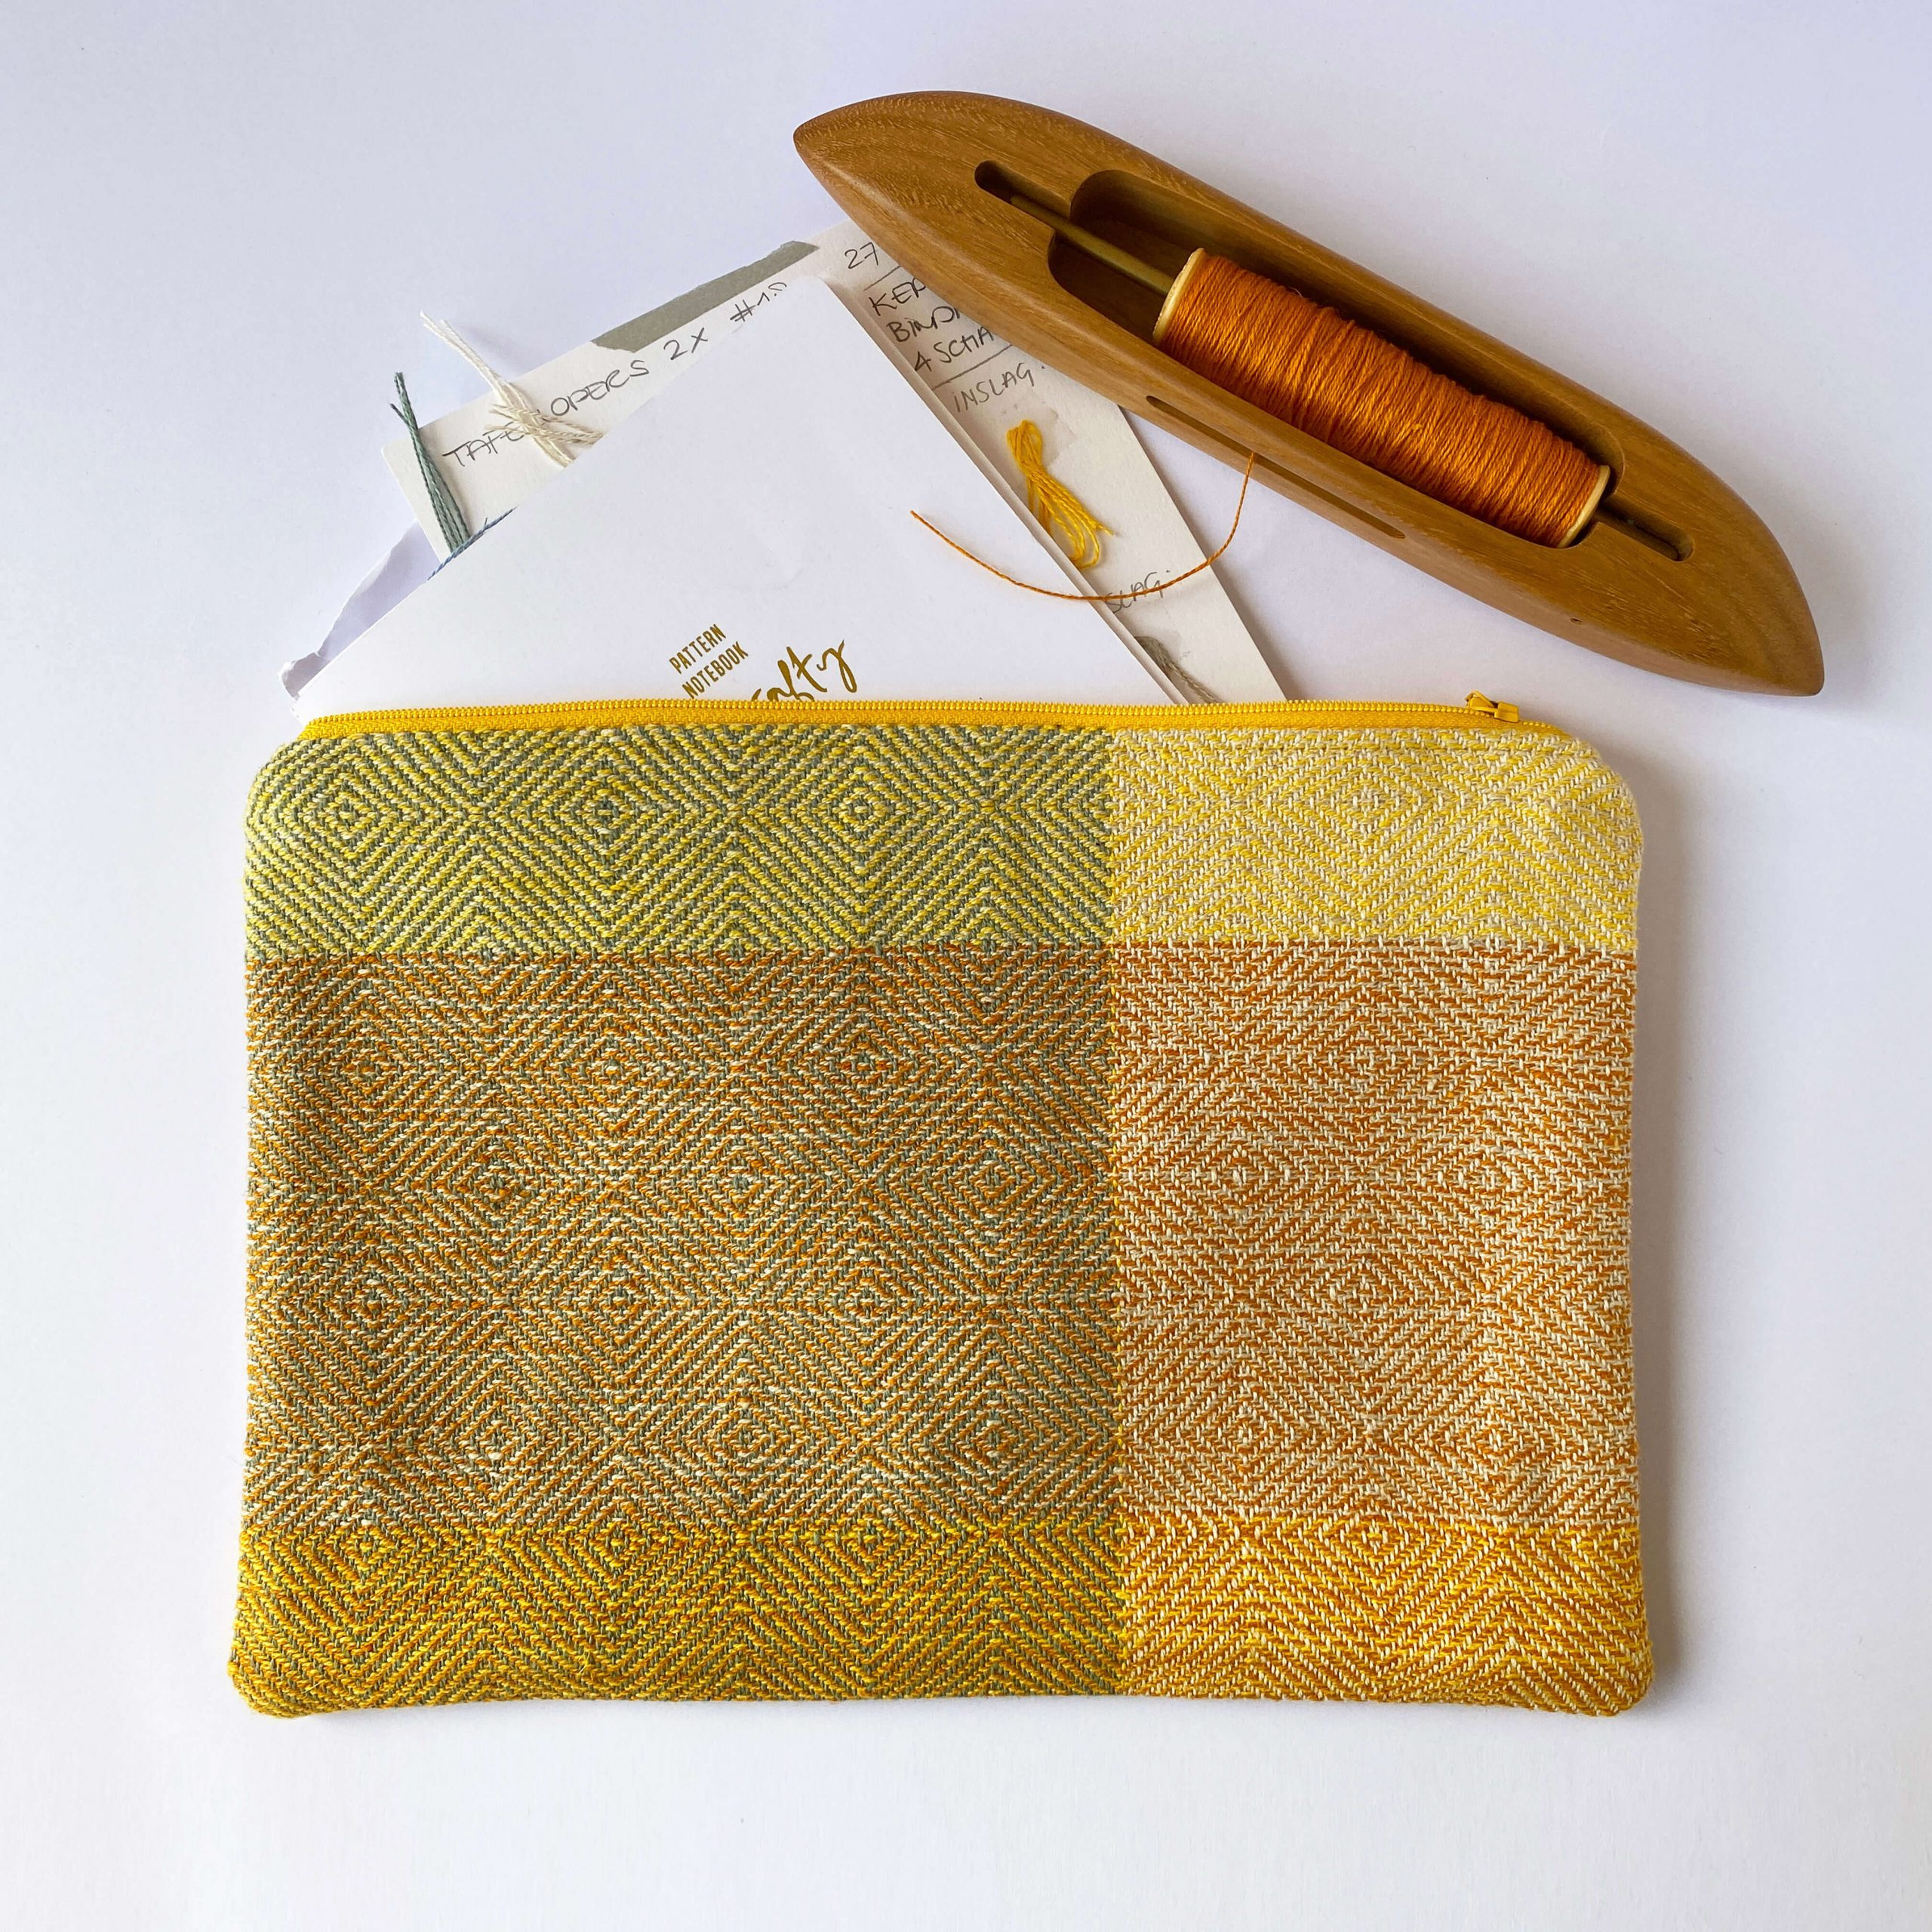 Zipperbag in point twill (12ZB)